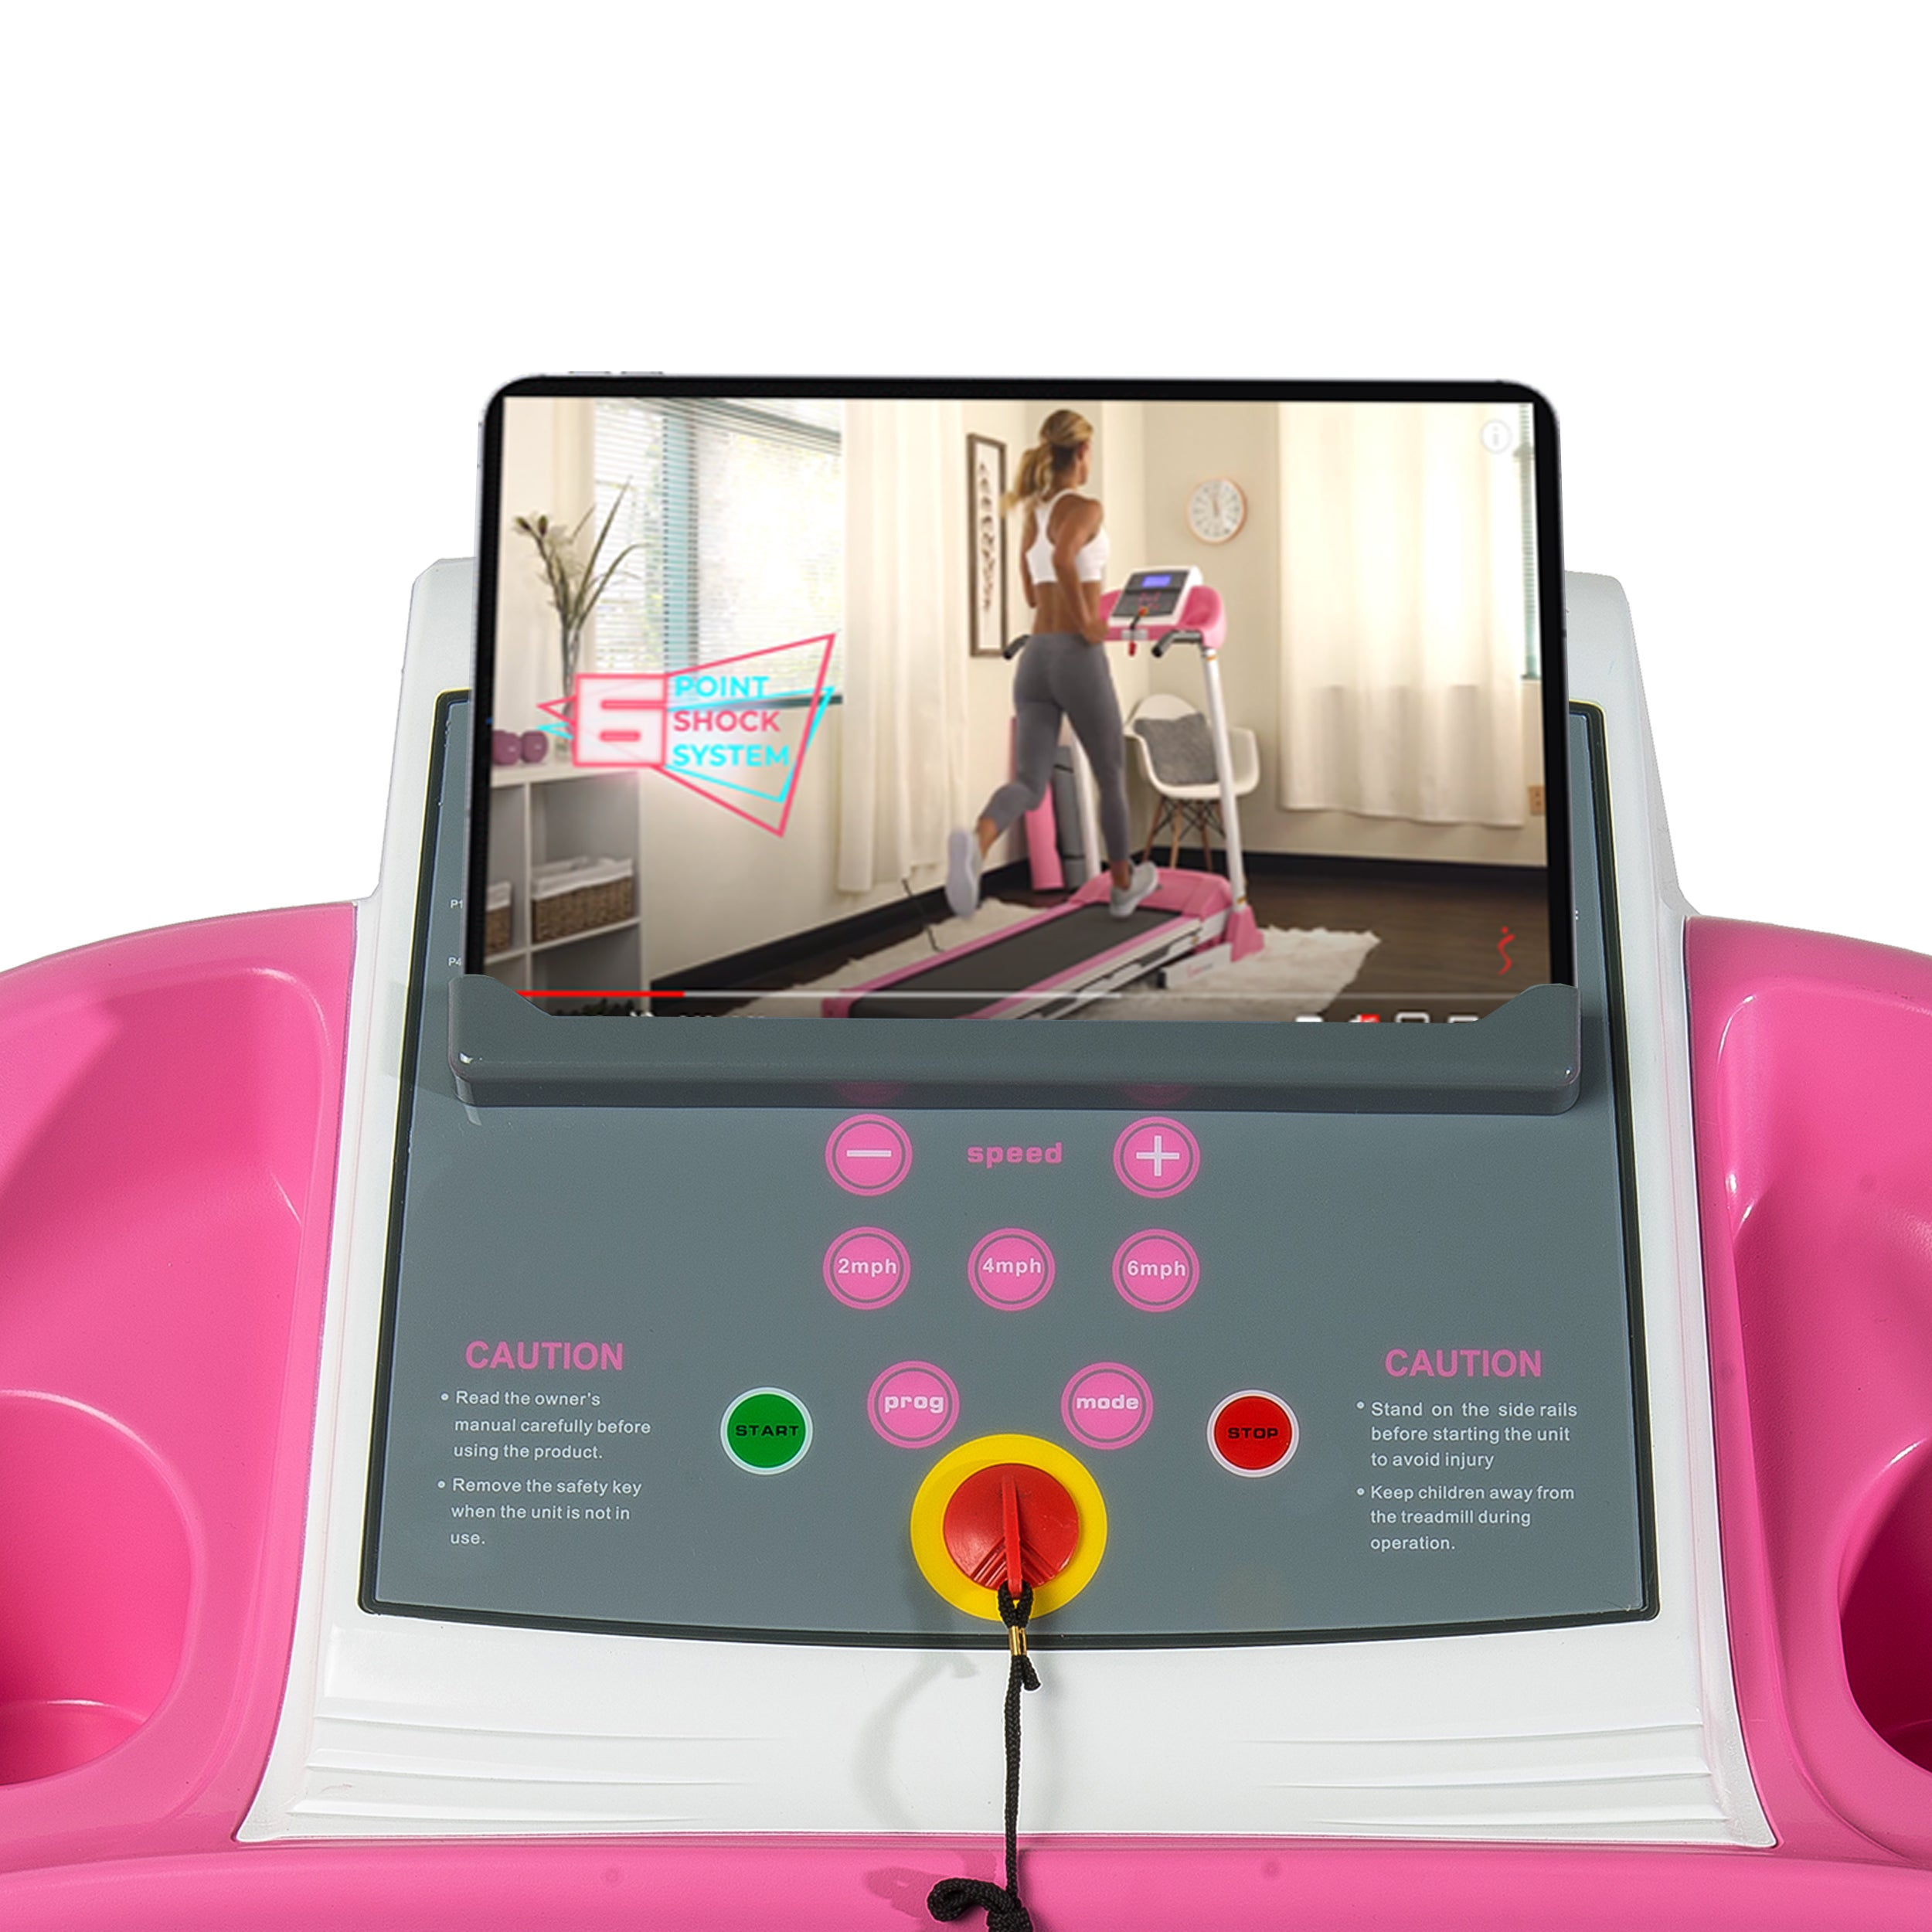 sunny-health-fitness-treadmills-pink-treadmill-manual-incline-LCD-display-P8700-device-holder